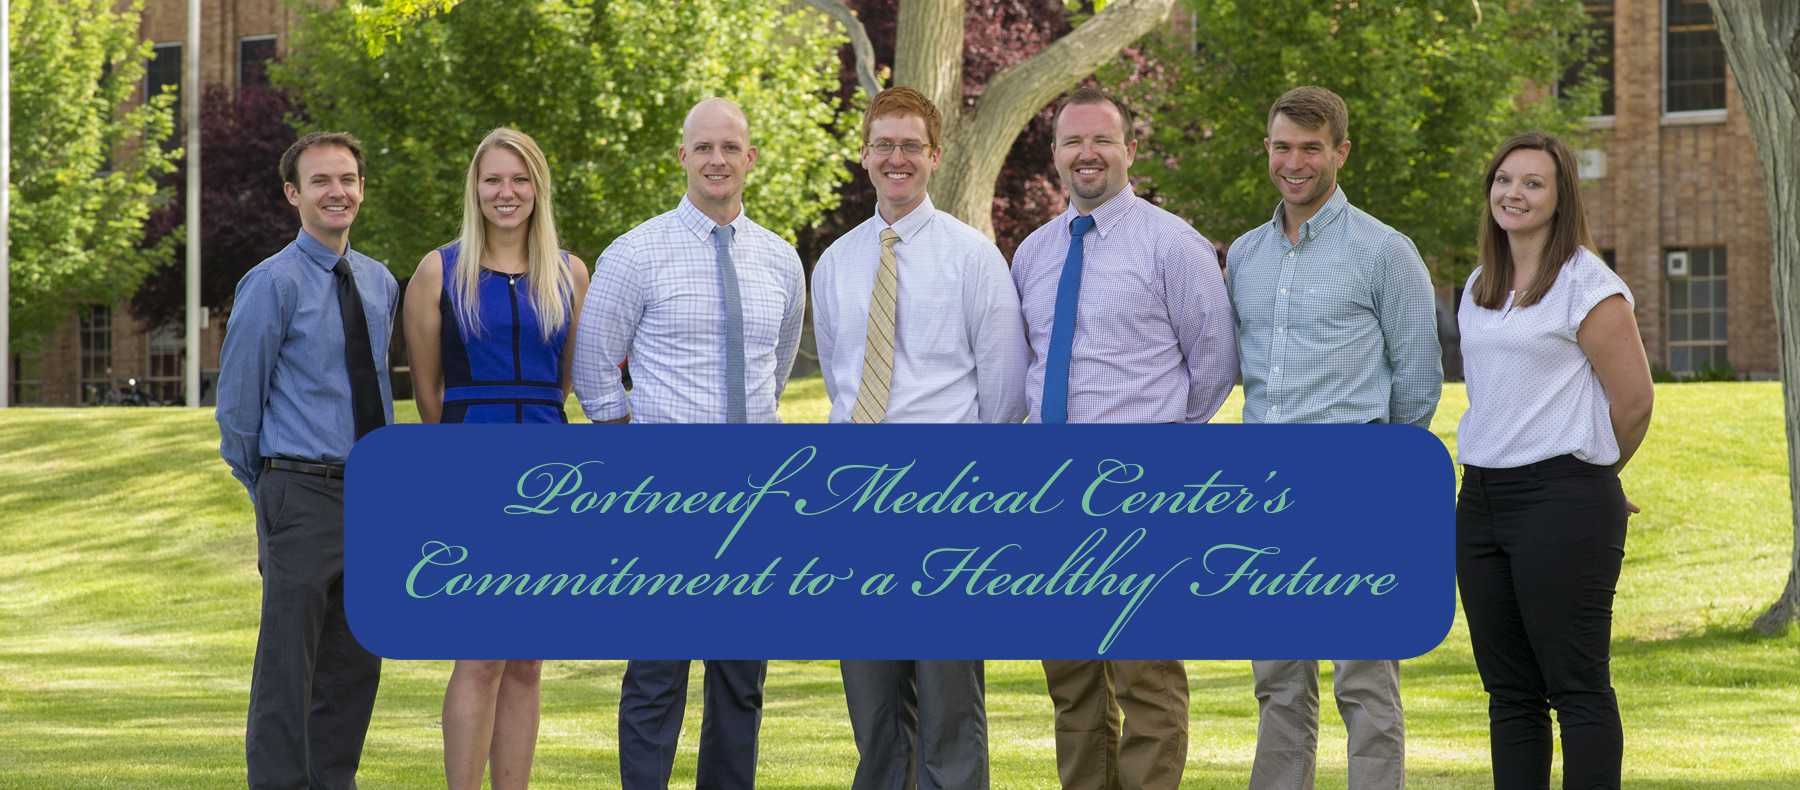 Portneuf Medical Center's commitment to a healthy future